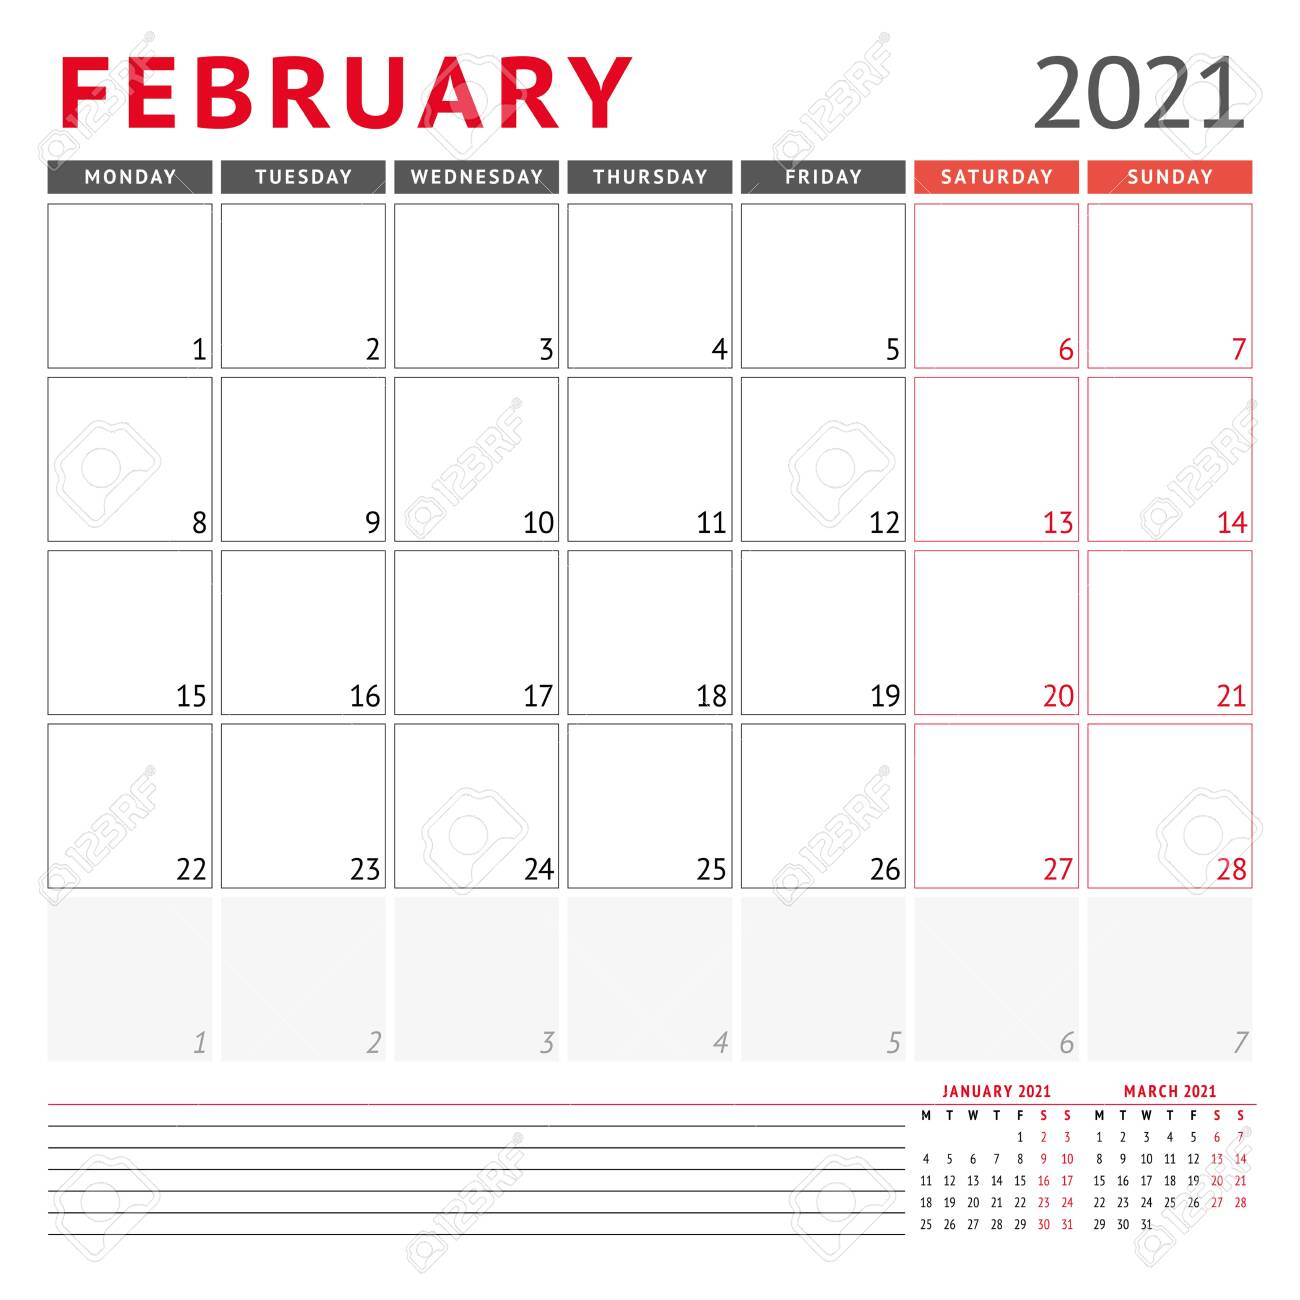 photo stock vector calendar template for february 2021 business monthly planner stationery design week starts on monday